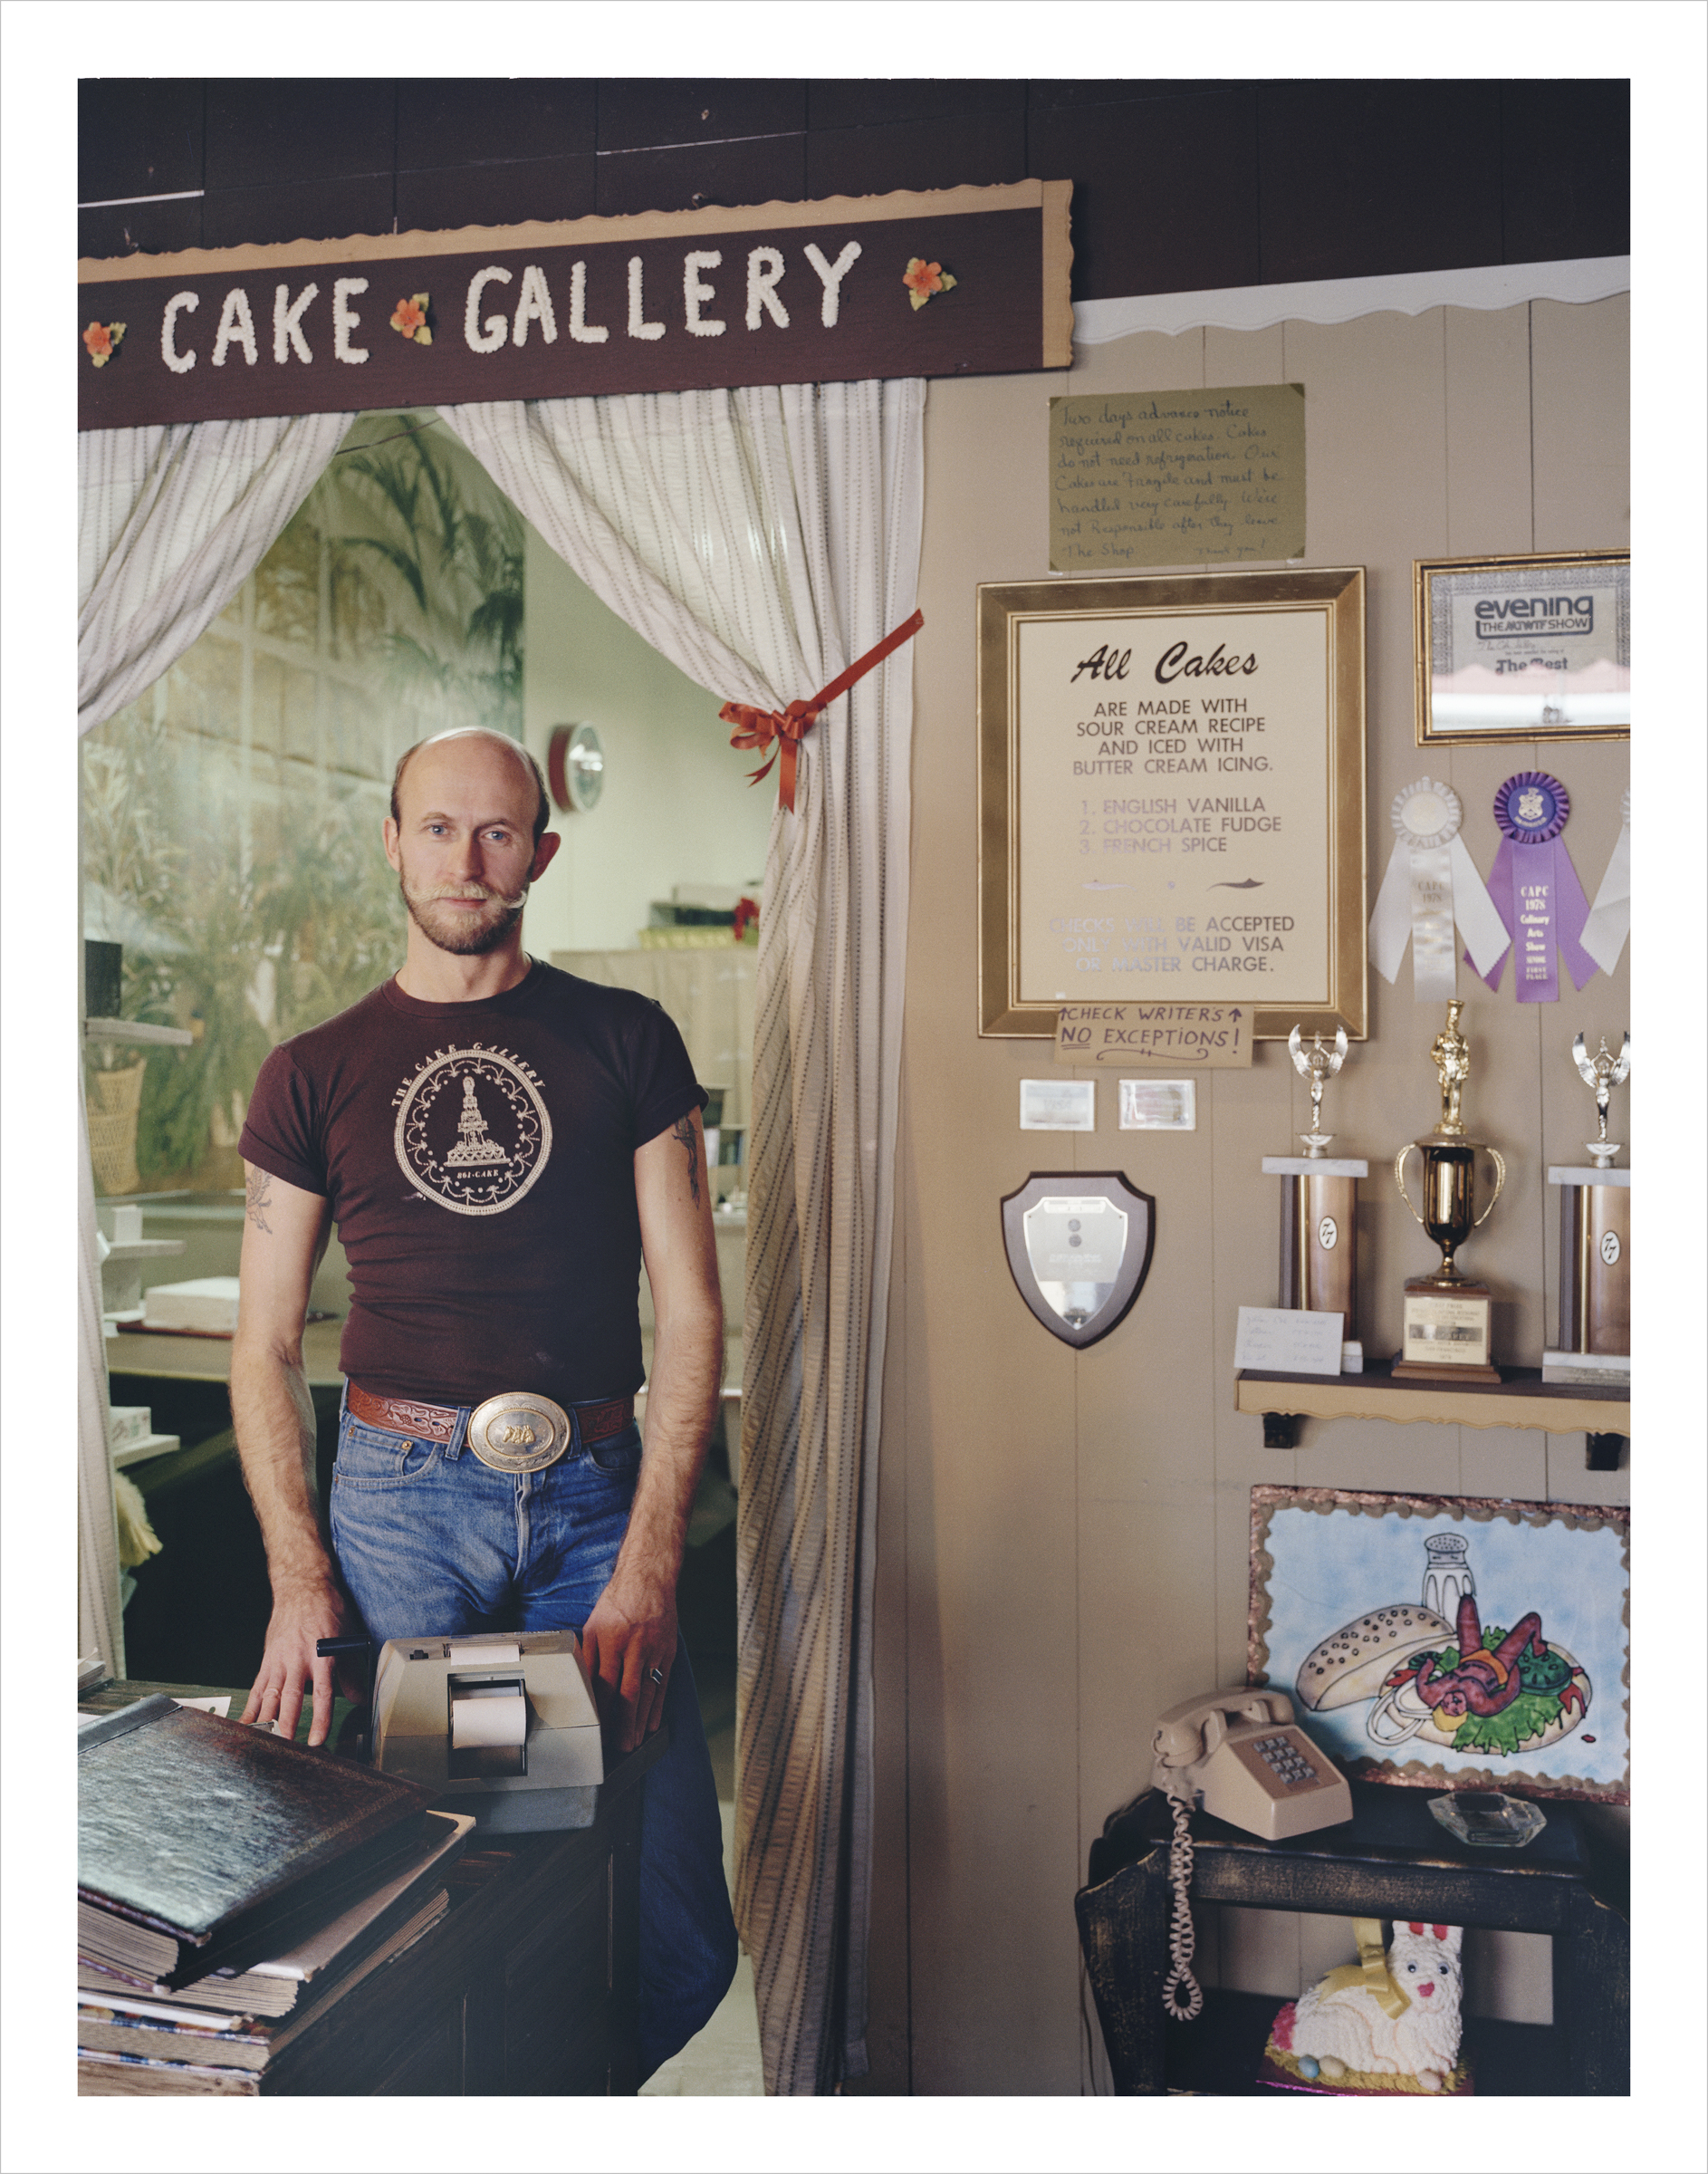 Ron Carney, owner, Cake Gallery, 290 9th Street, 1982 Archival Pigment Print, 2016 16 x 20 inches, edition of 5 20 x 24 inches, edition of 2 30 x 40 inches, edition of 2